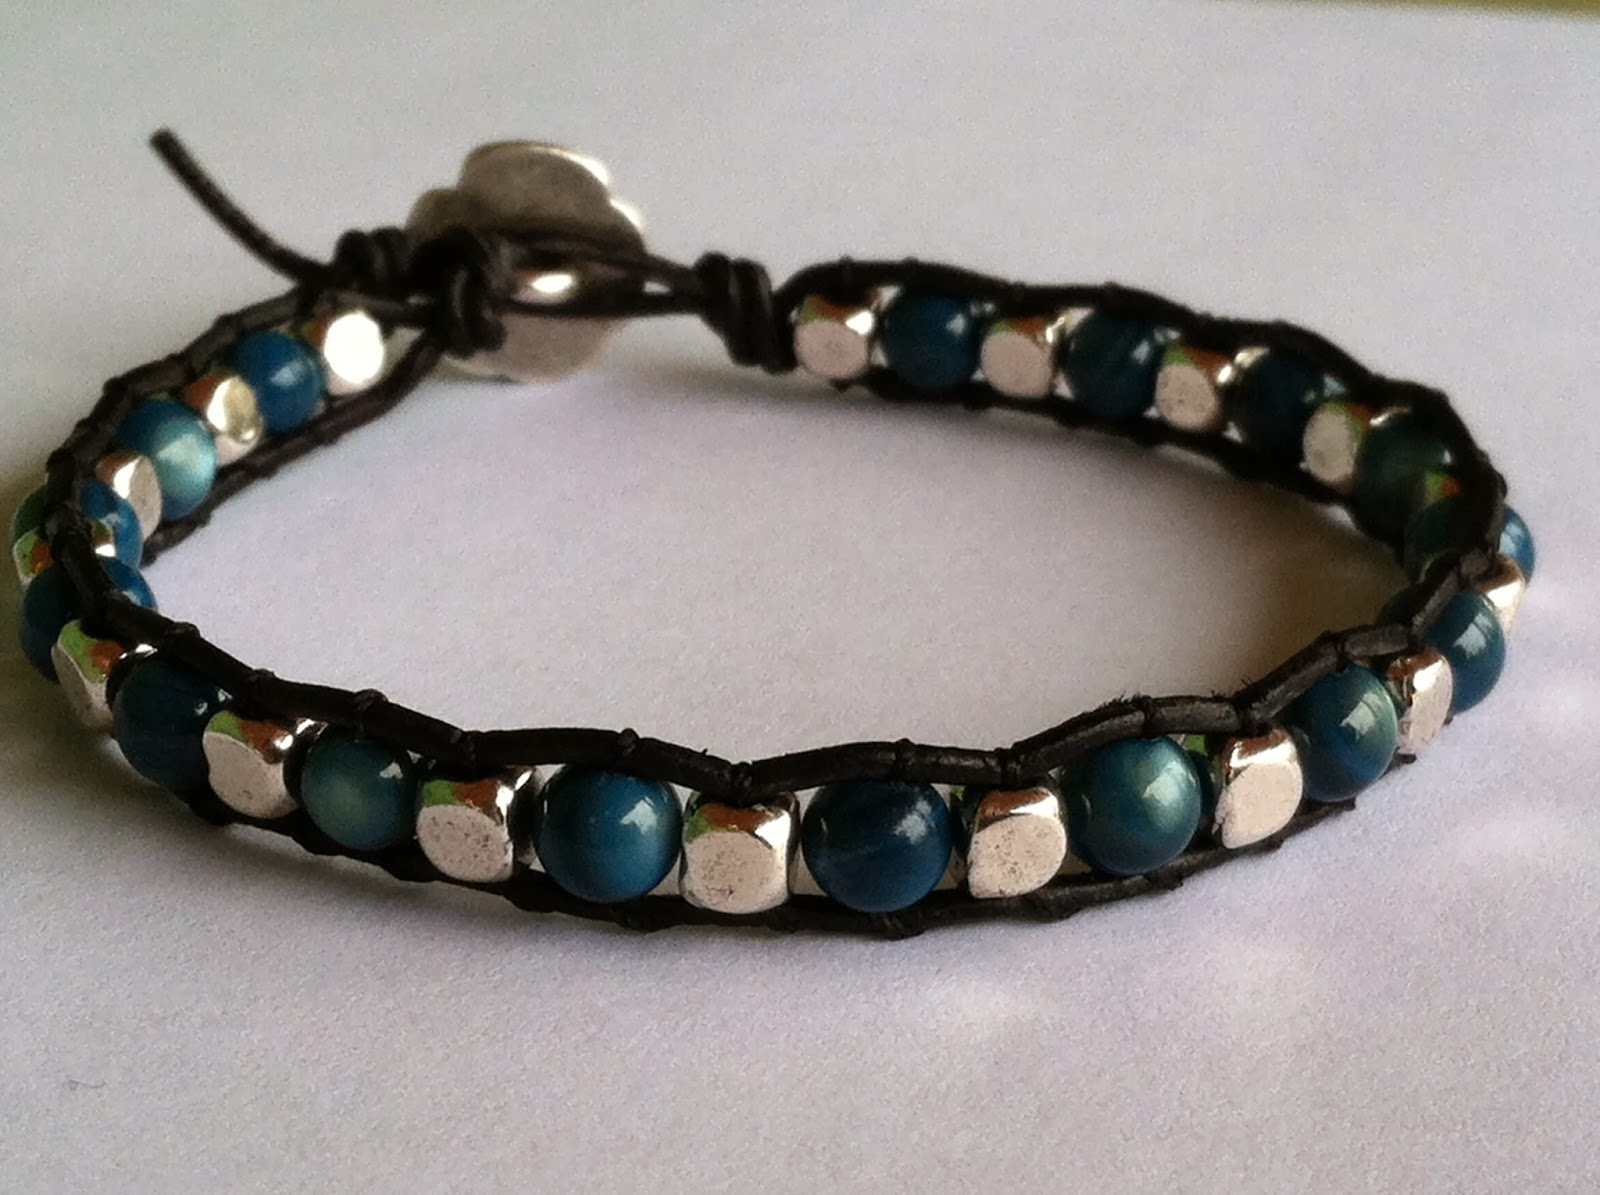 https://www.etsy.com/listing/173053593/leather-beaded-metal-button-clasp?ref=listing-shop-header-1